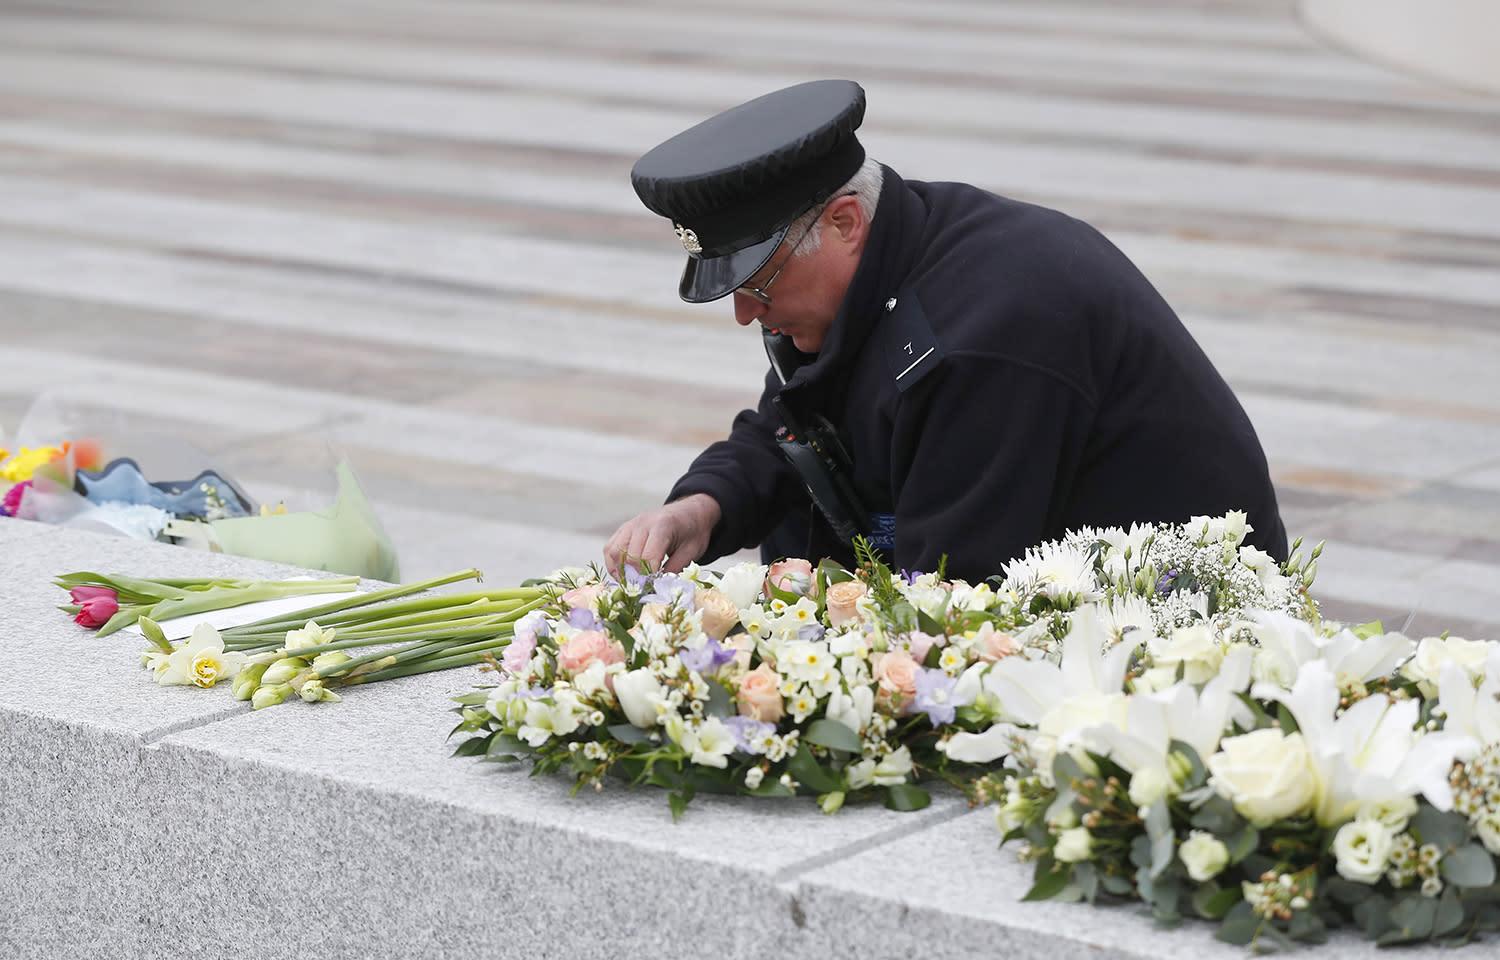 <p>A security officer arranges flowers outside New Scotland Yard following Wednesday's attack outside the Houses of Parliament in London, Friday, March 24, 2017. (Peter Nicholls/Reuters) </p>